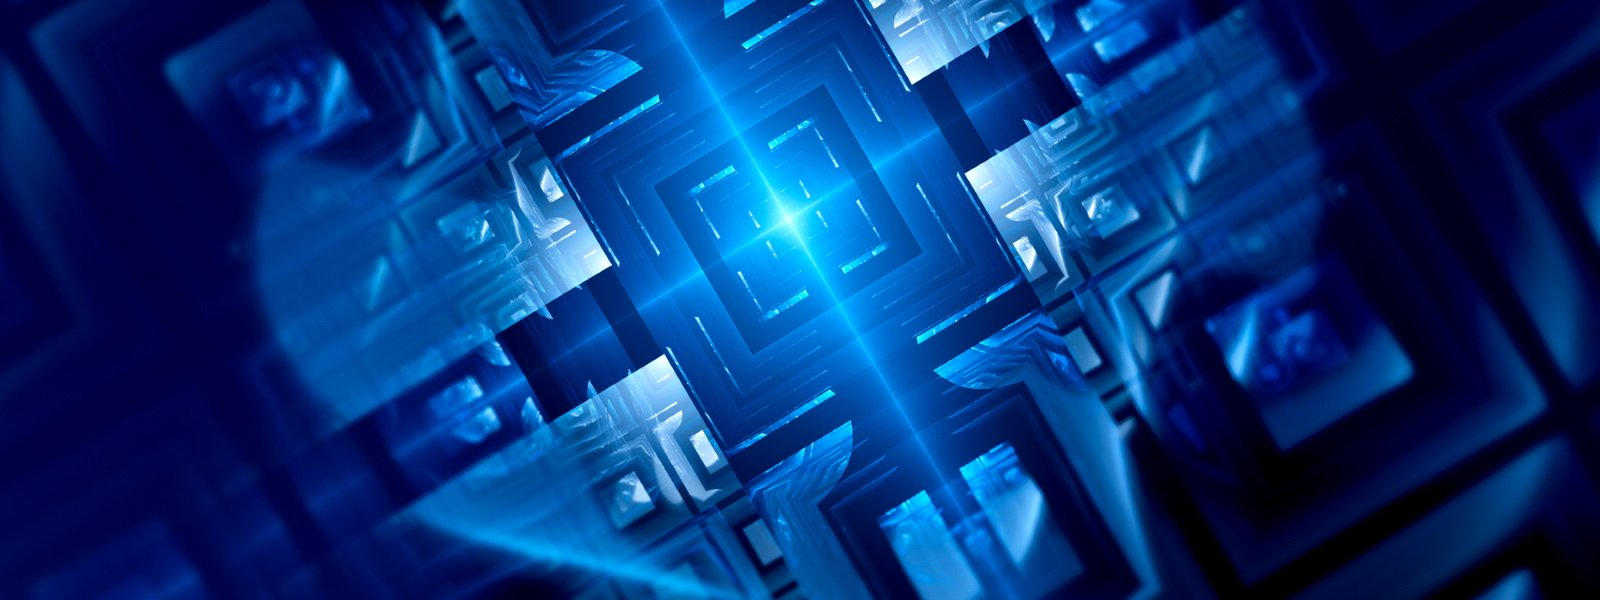 Quantum computer. Image by Getty Images